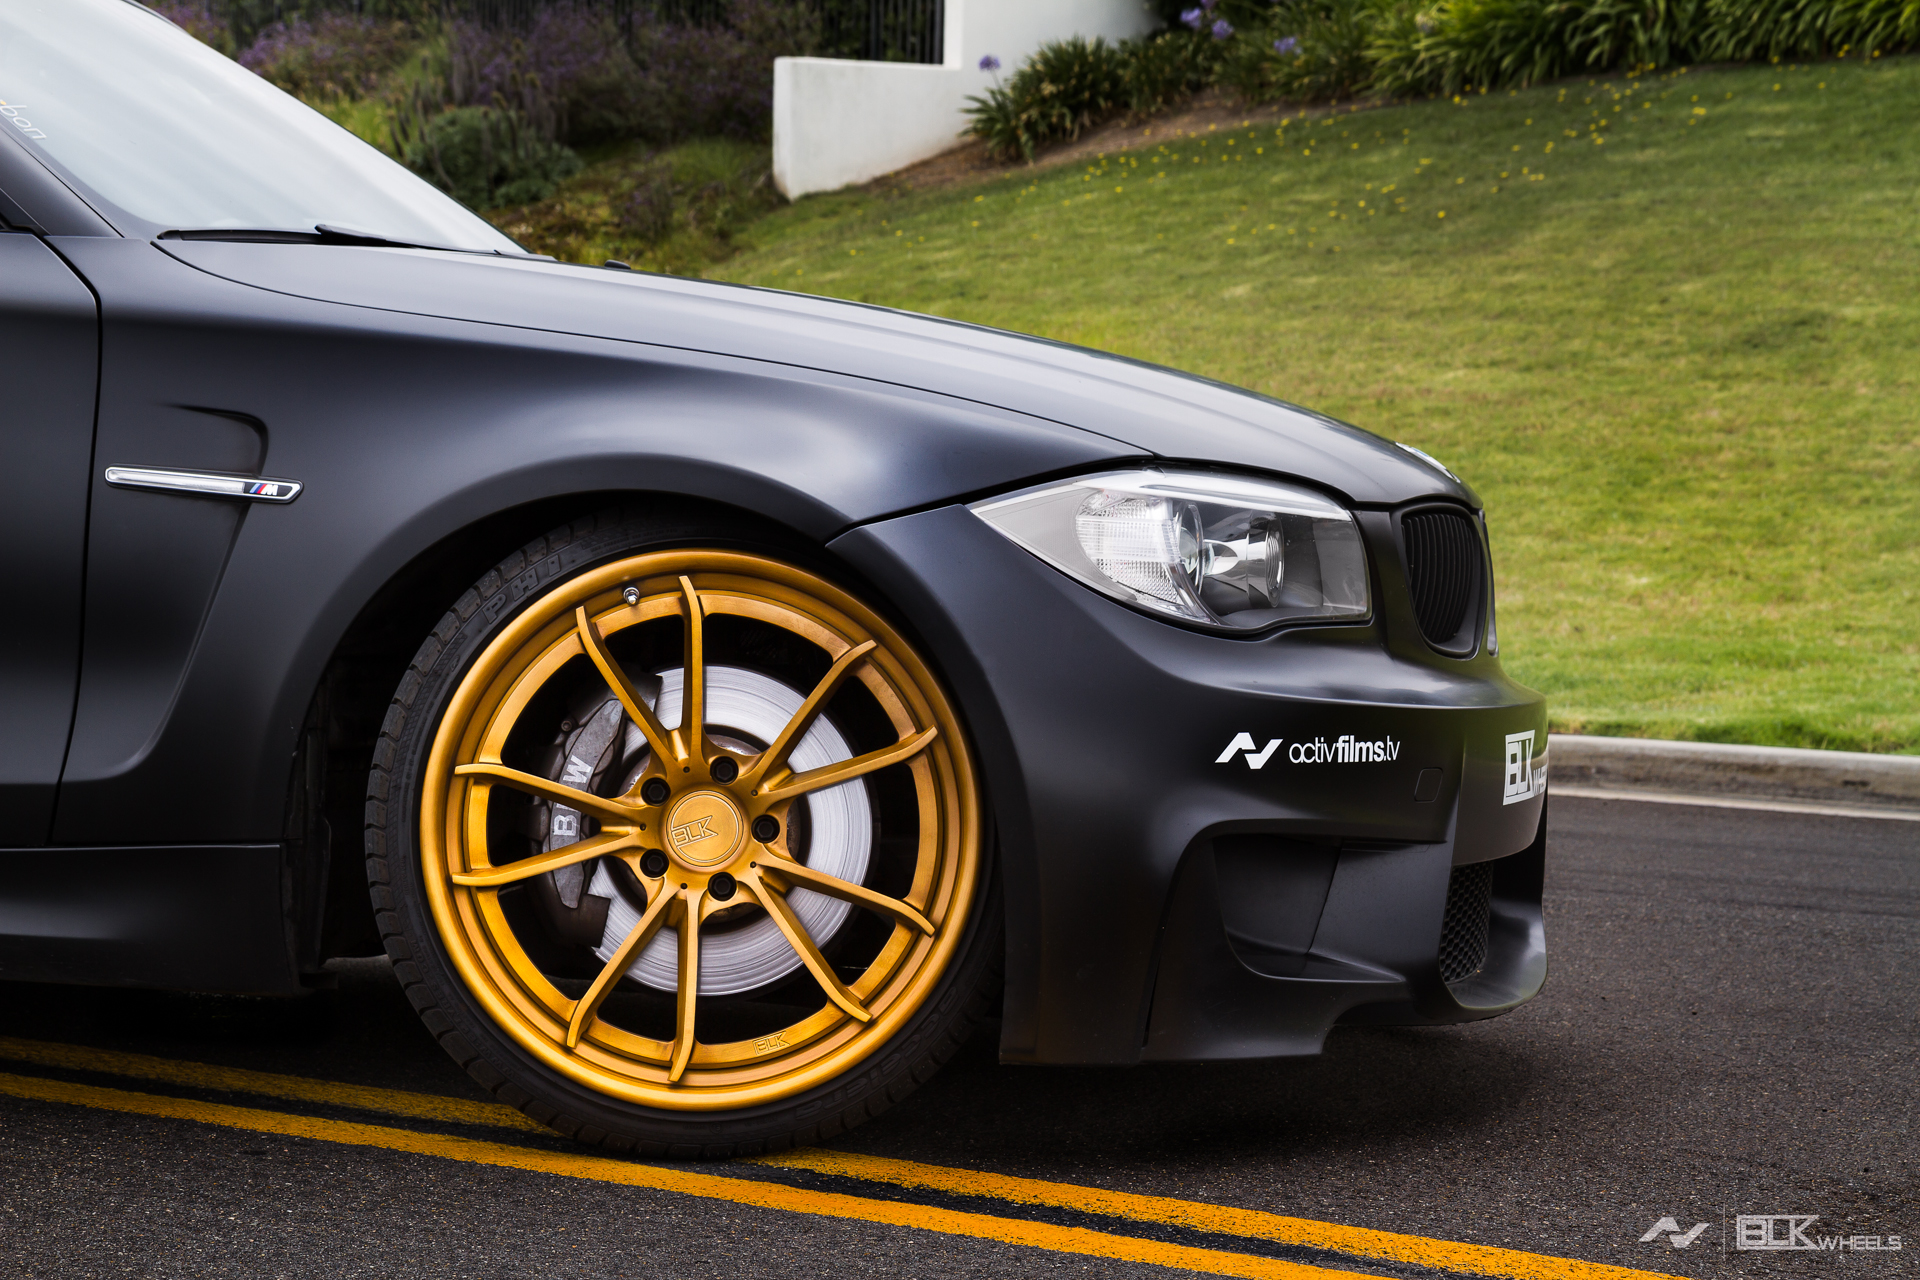 BMW 135i By ActivFilms.TV